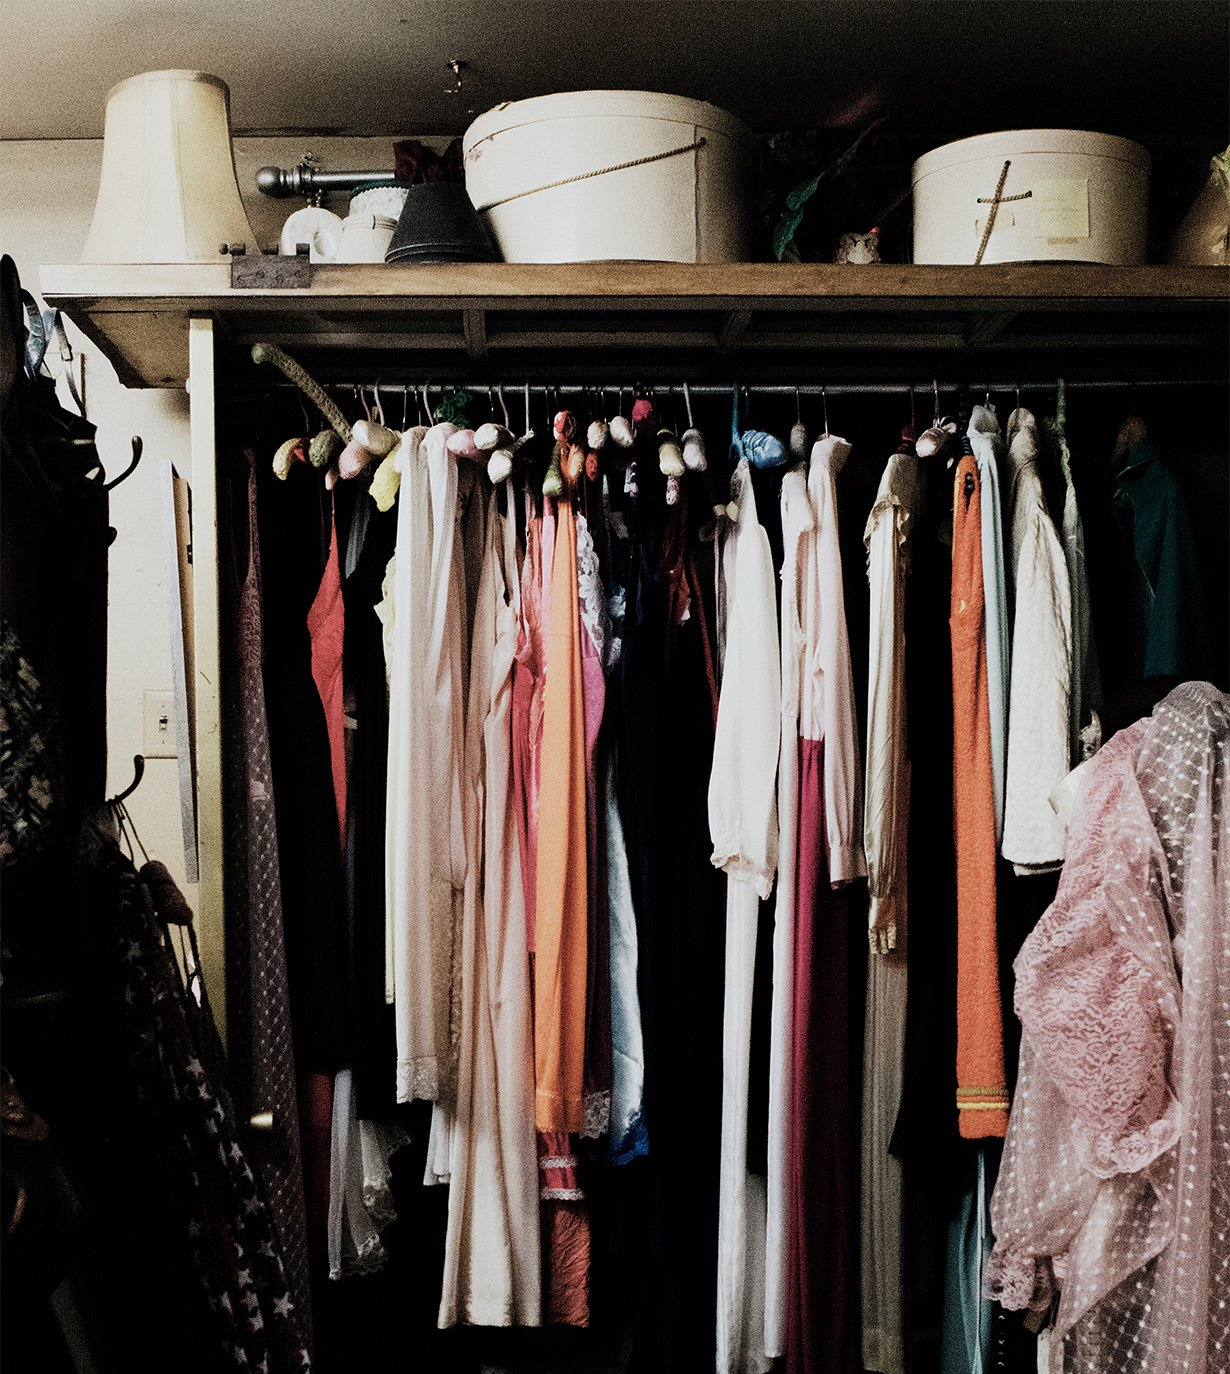 4 R's of Sustainable Fashion